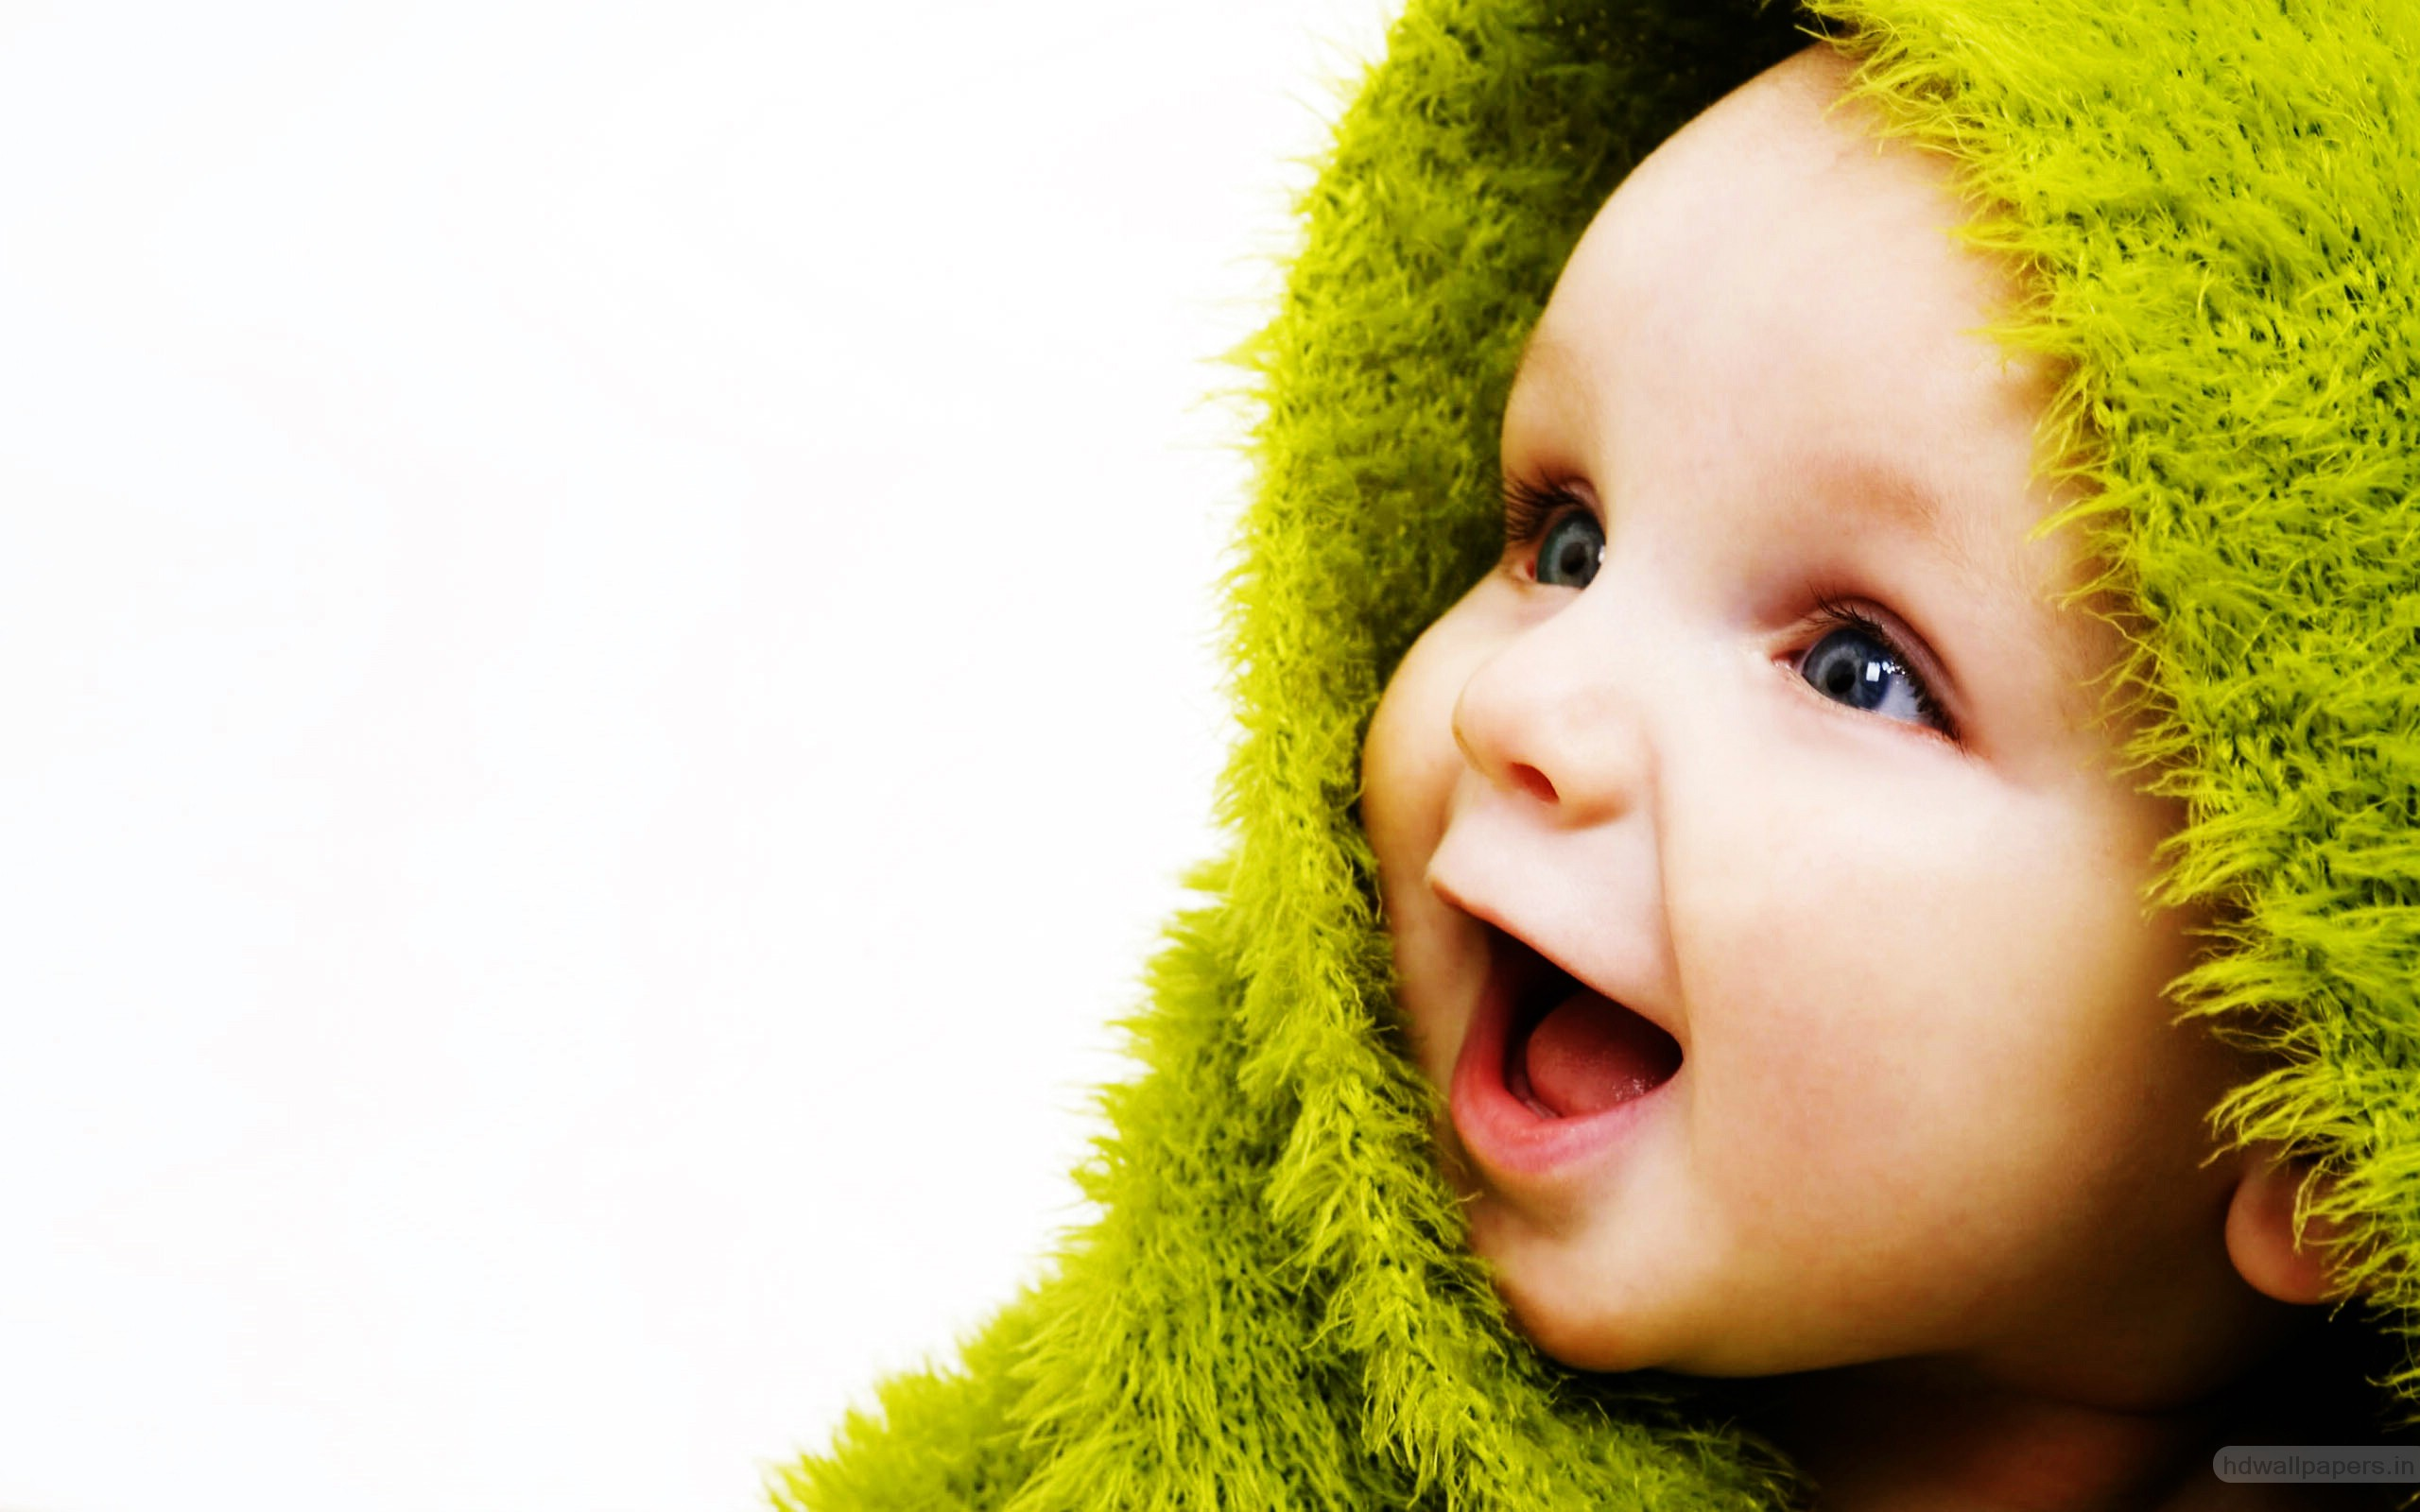 little cute baby - wallpaper, high definition, high quality, widescreen